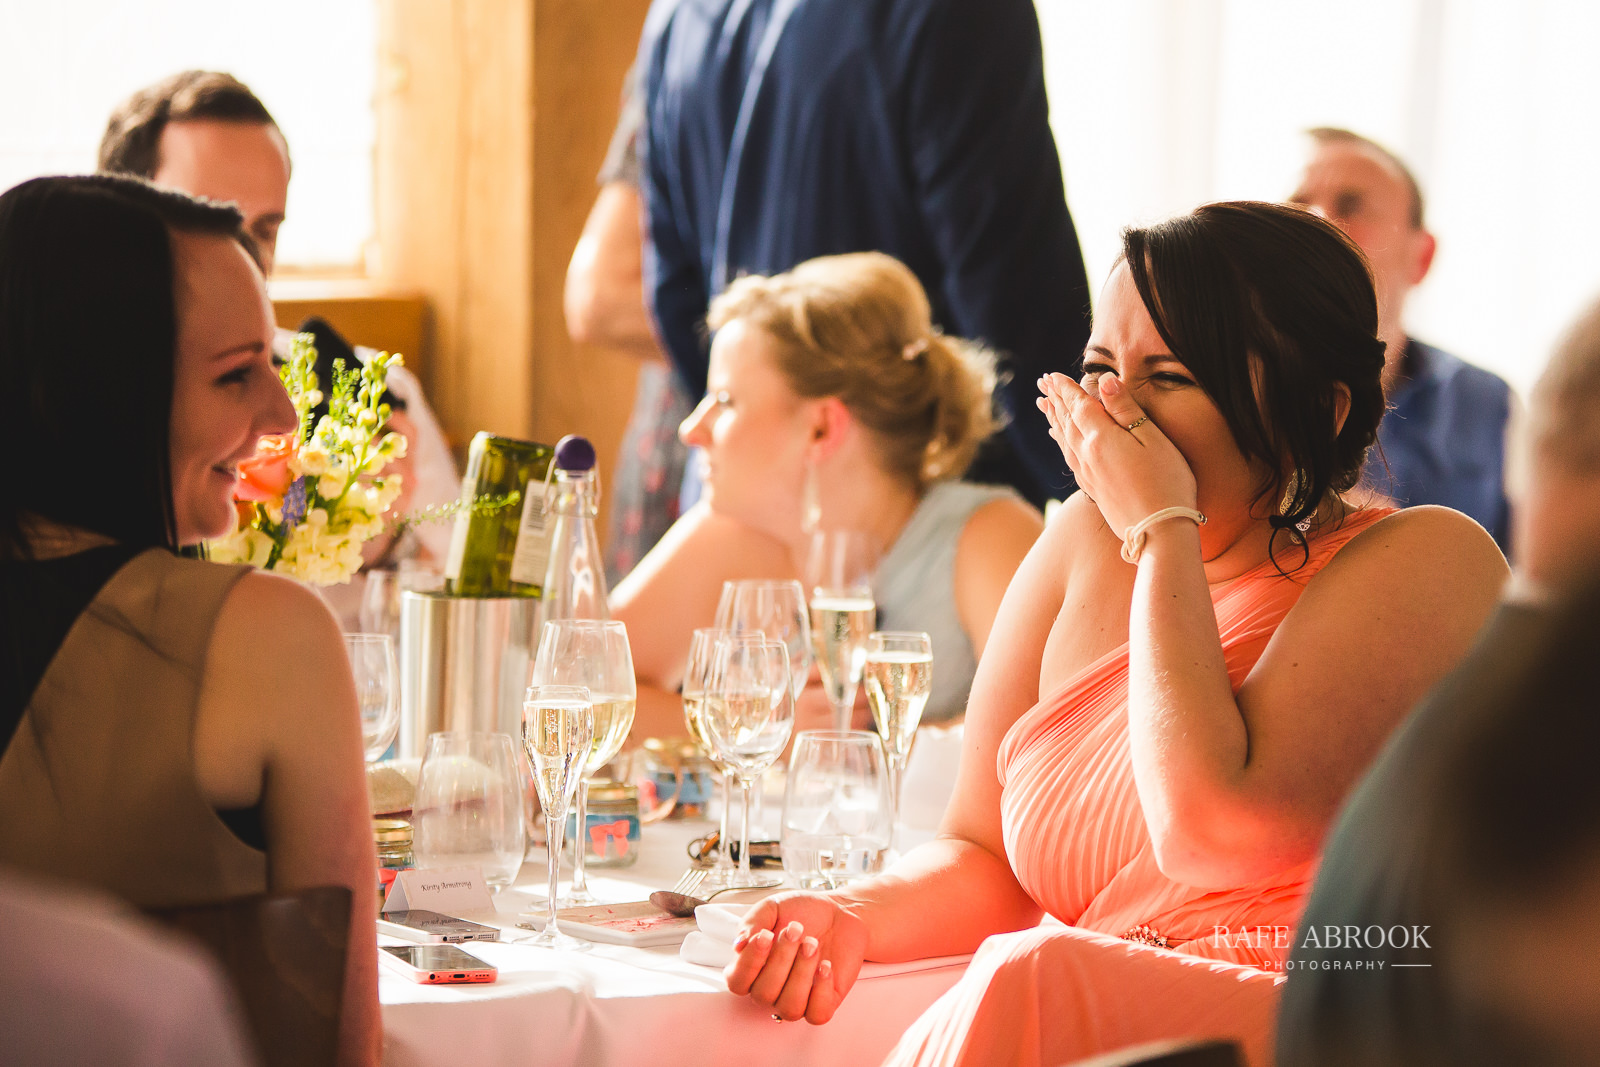 bassmead manor barns wedding st neots cambridgeshire hertfordshire wedding photographer rafe abrook-1628.jpg